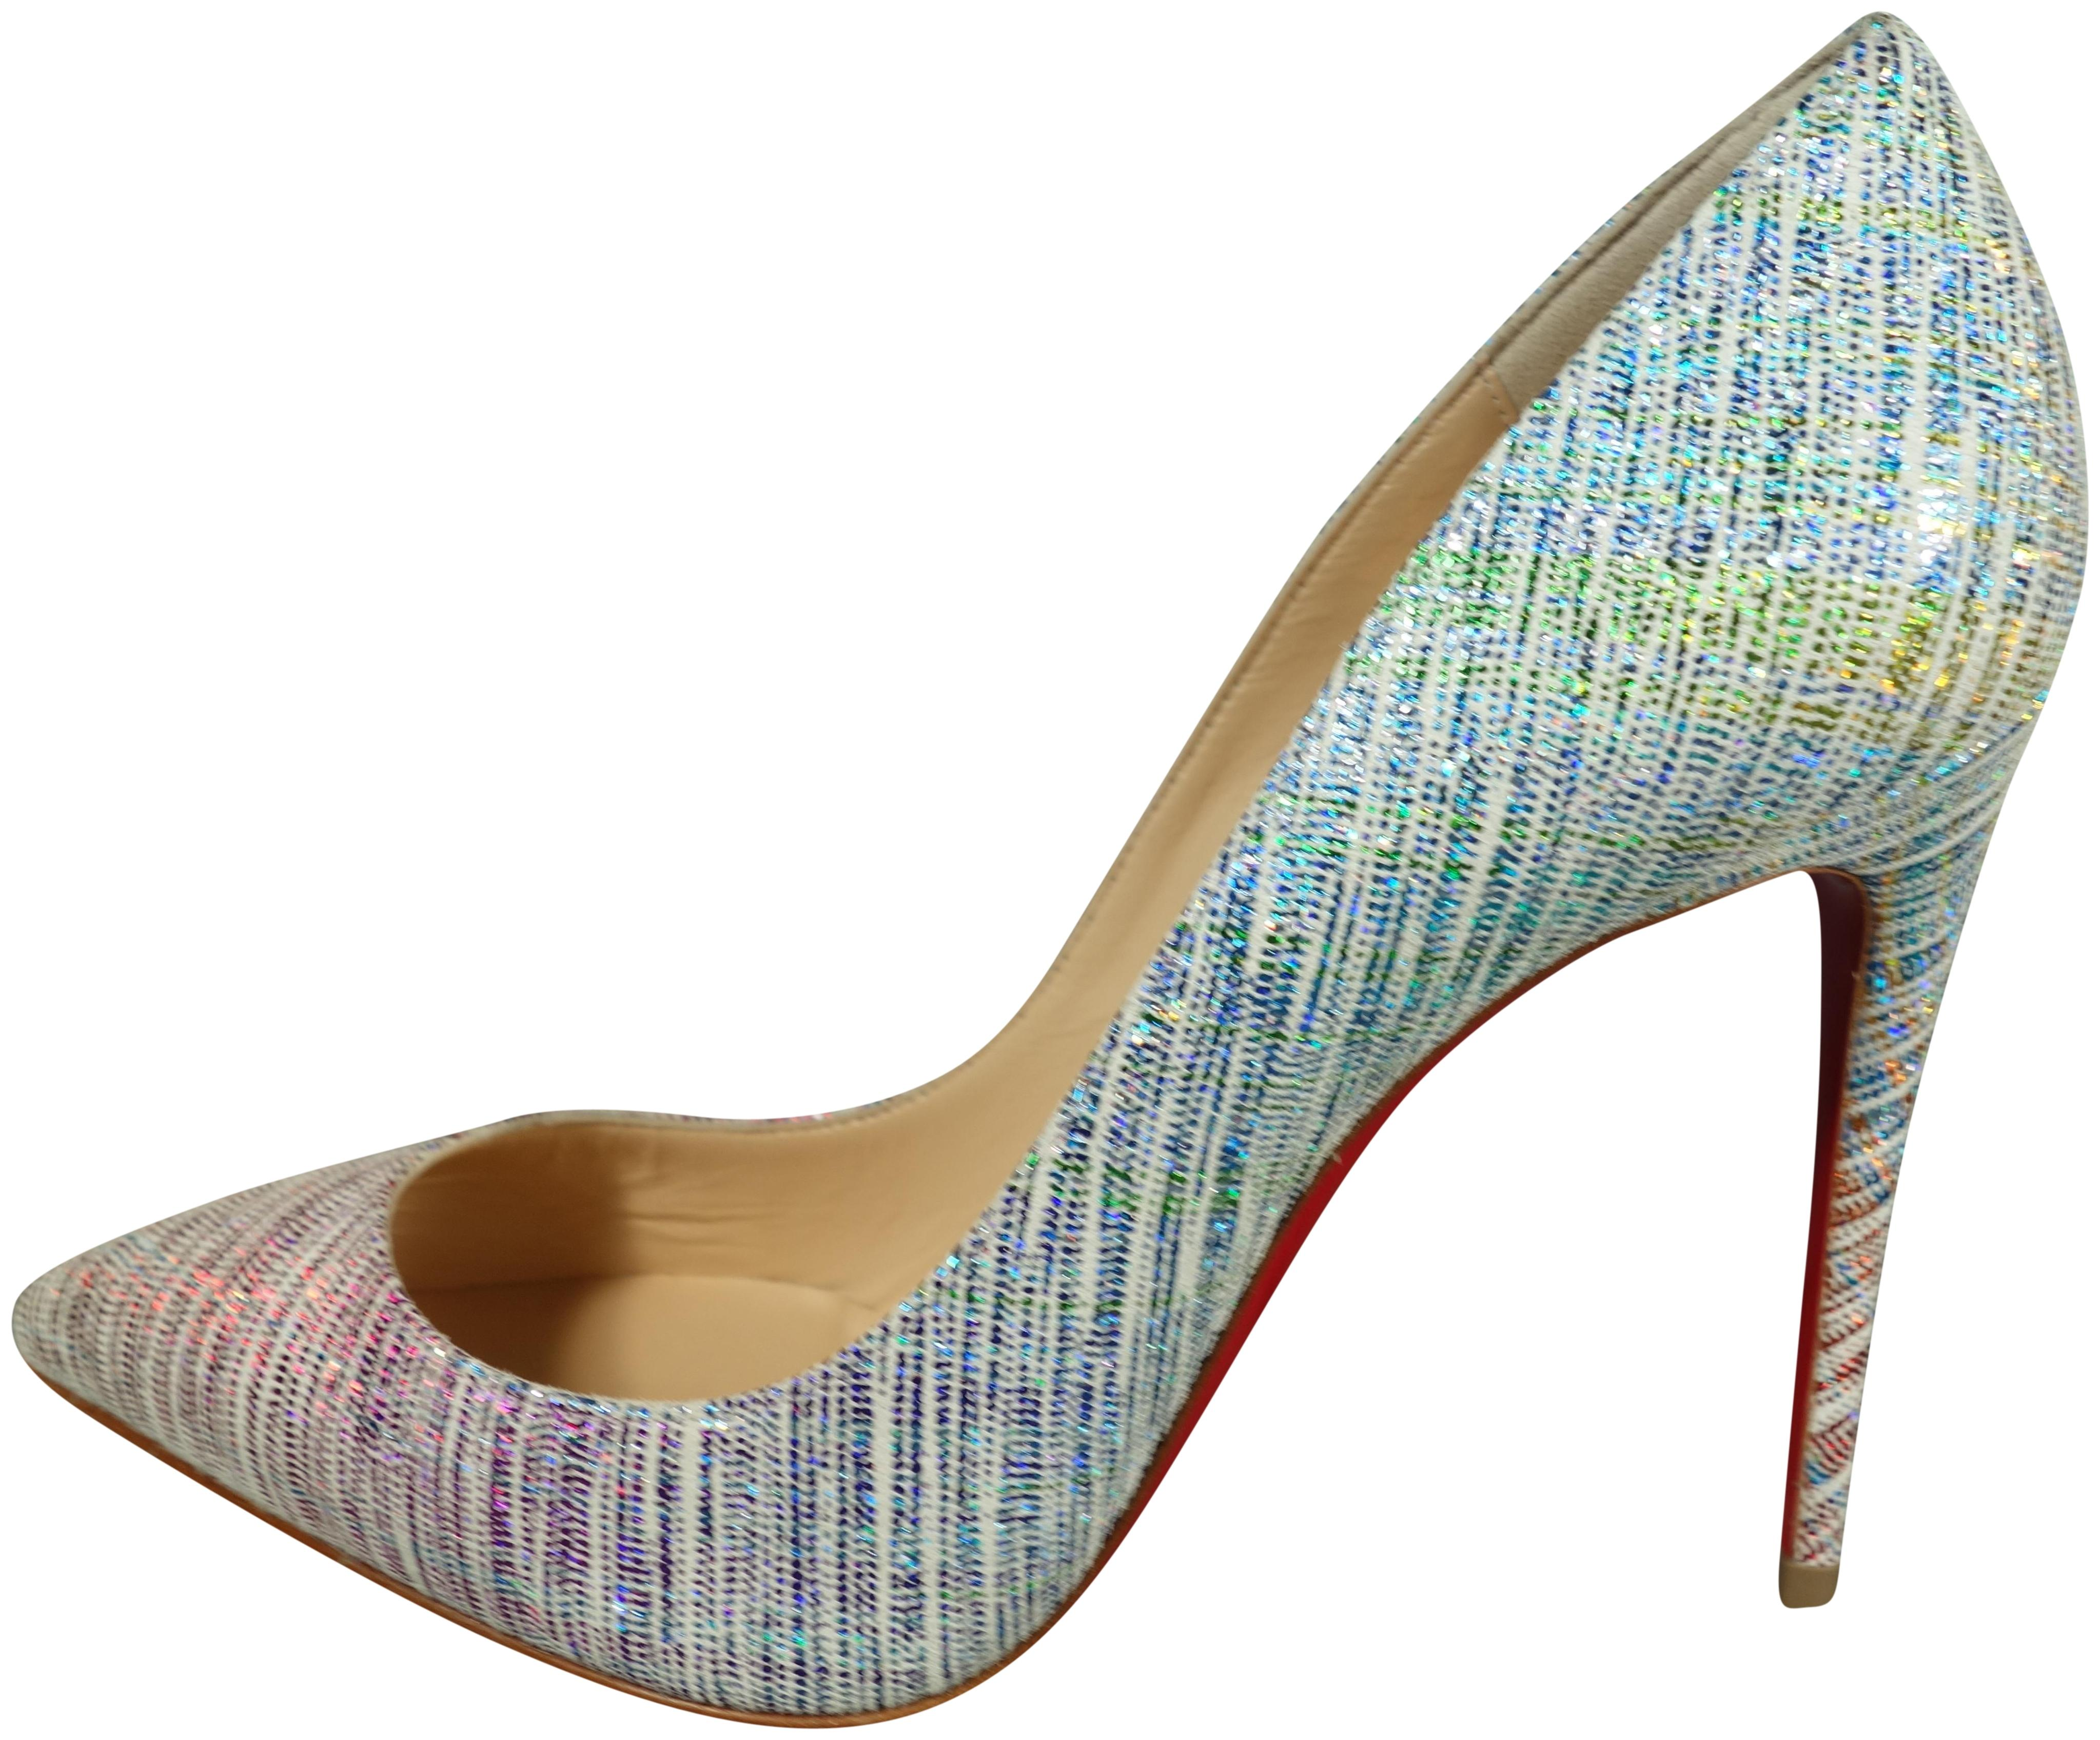 Christian Louboutin Multi- Colored Pigalle Follies 100 Suede Unicorn Point Toe High New Pumps Size EU 36.5 (Approx. US 6.5) Regular (M, B)